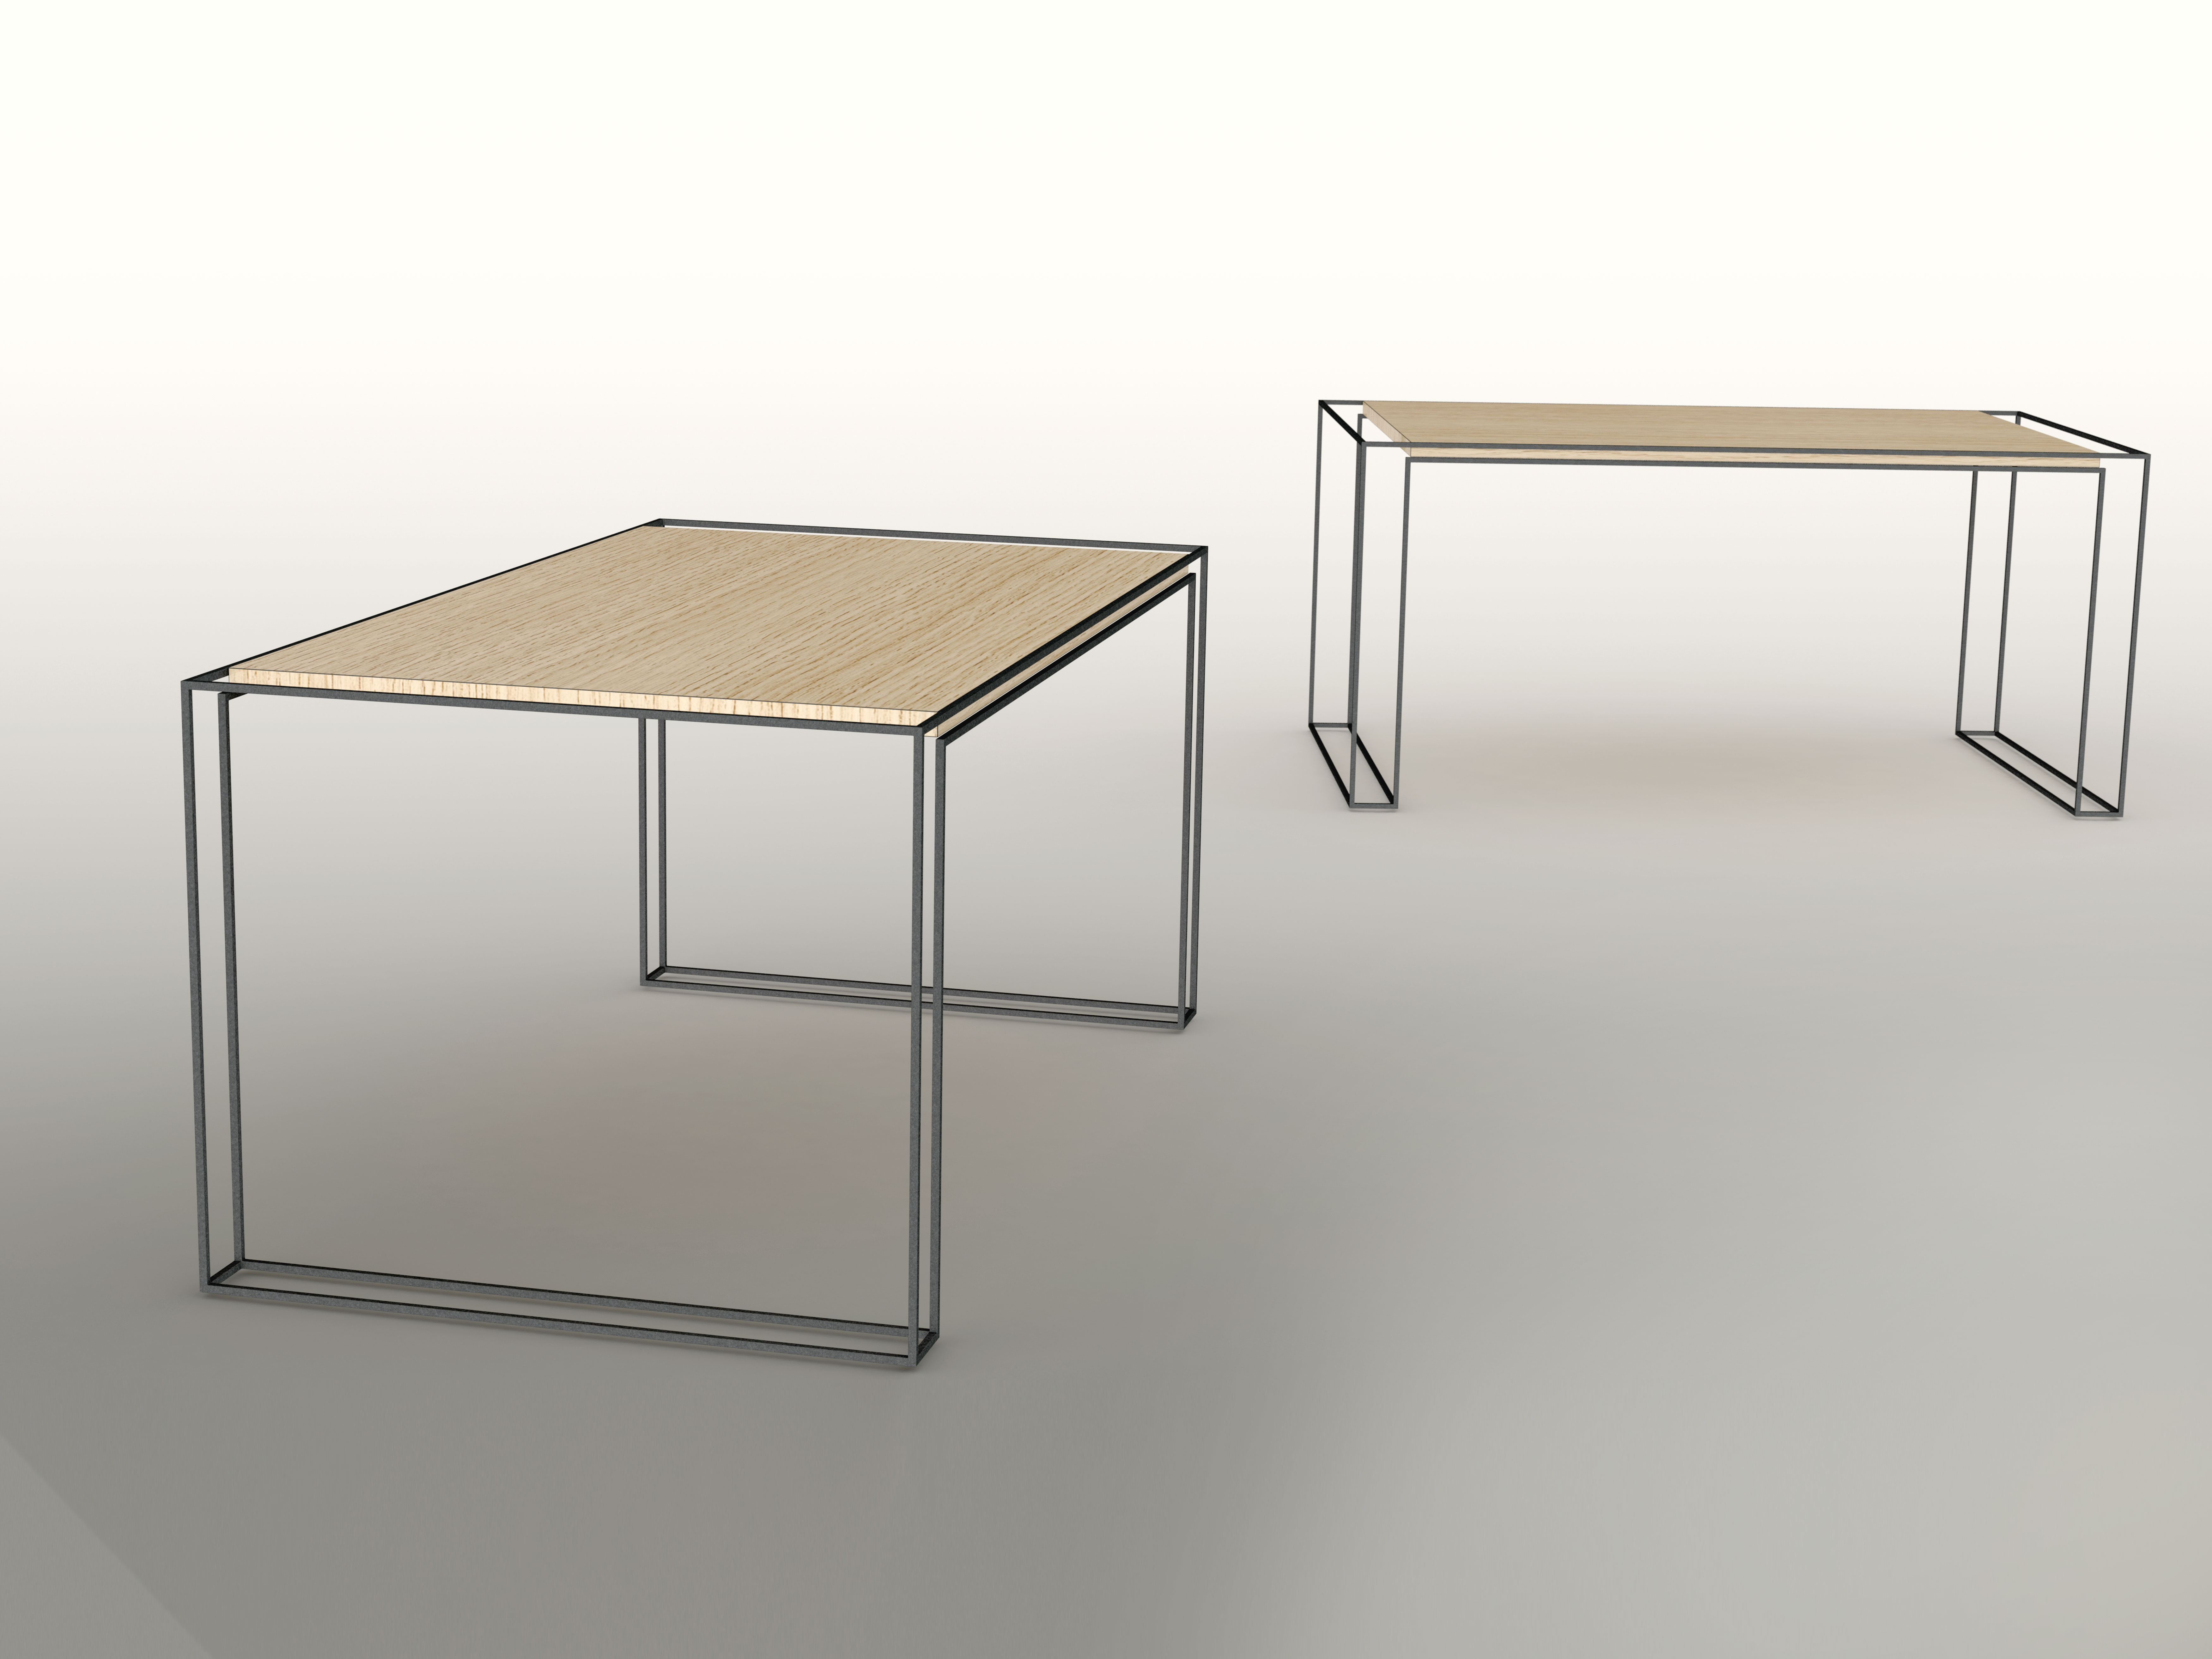 Gallerij Interior Wire Harness Tables Handmade Oak Table Surrounded By A Stainless Steel Measurements 160 X 90